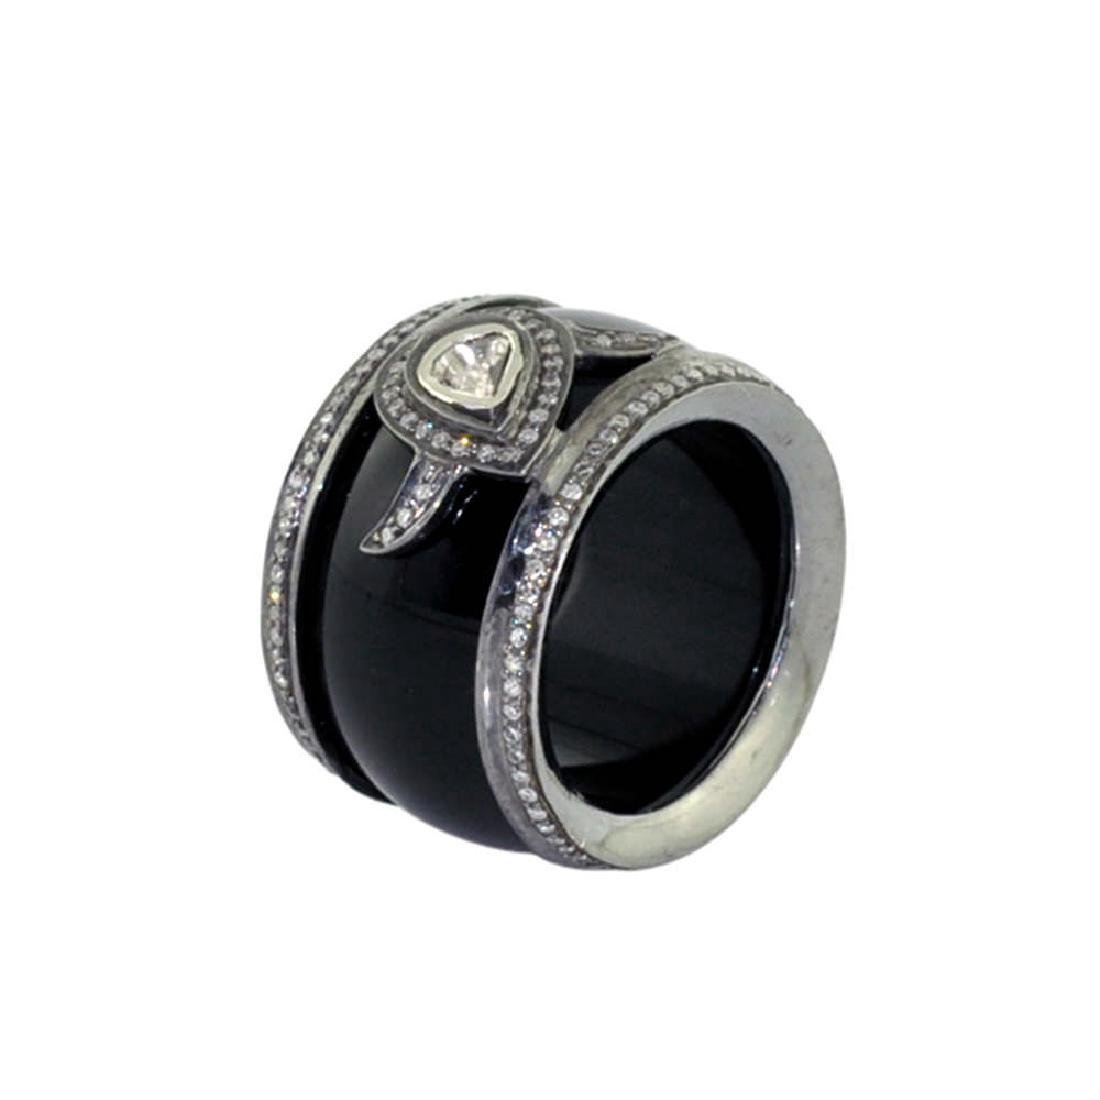 Sterling Silver Onyx Diamond Ring, 32.5ctw - 3